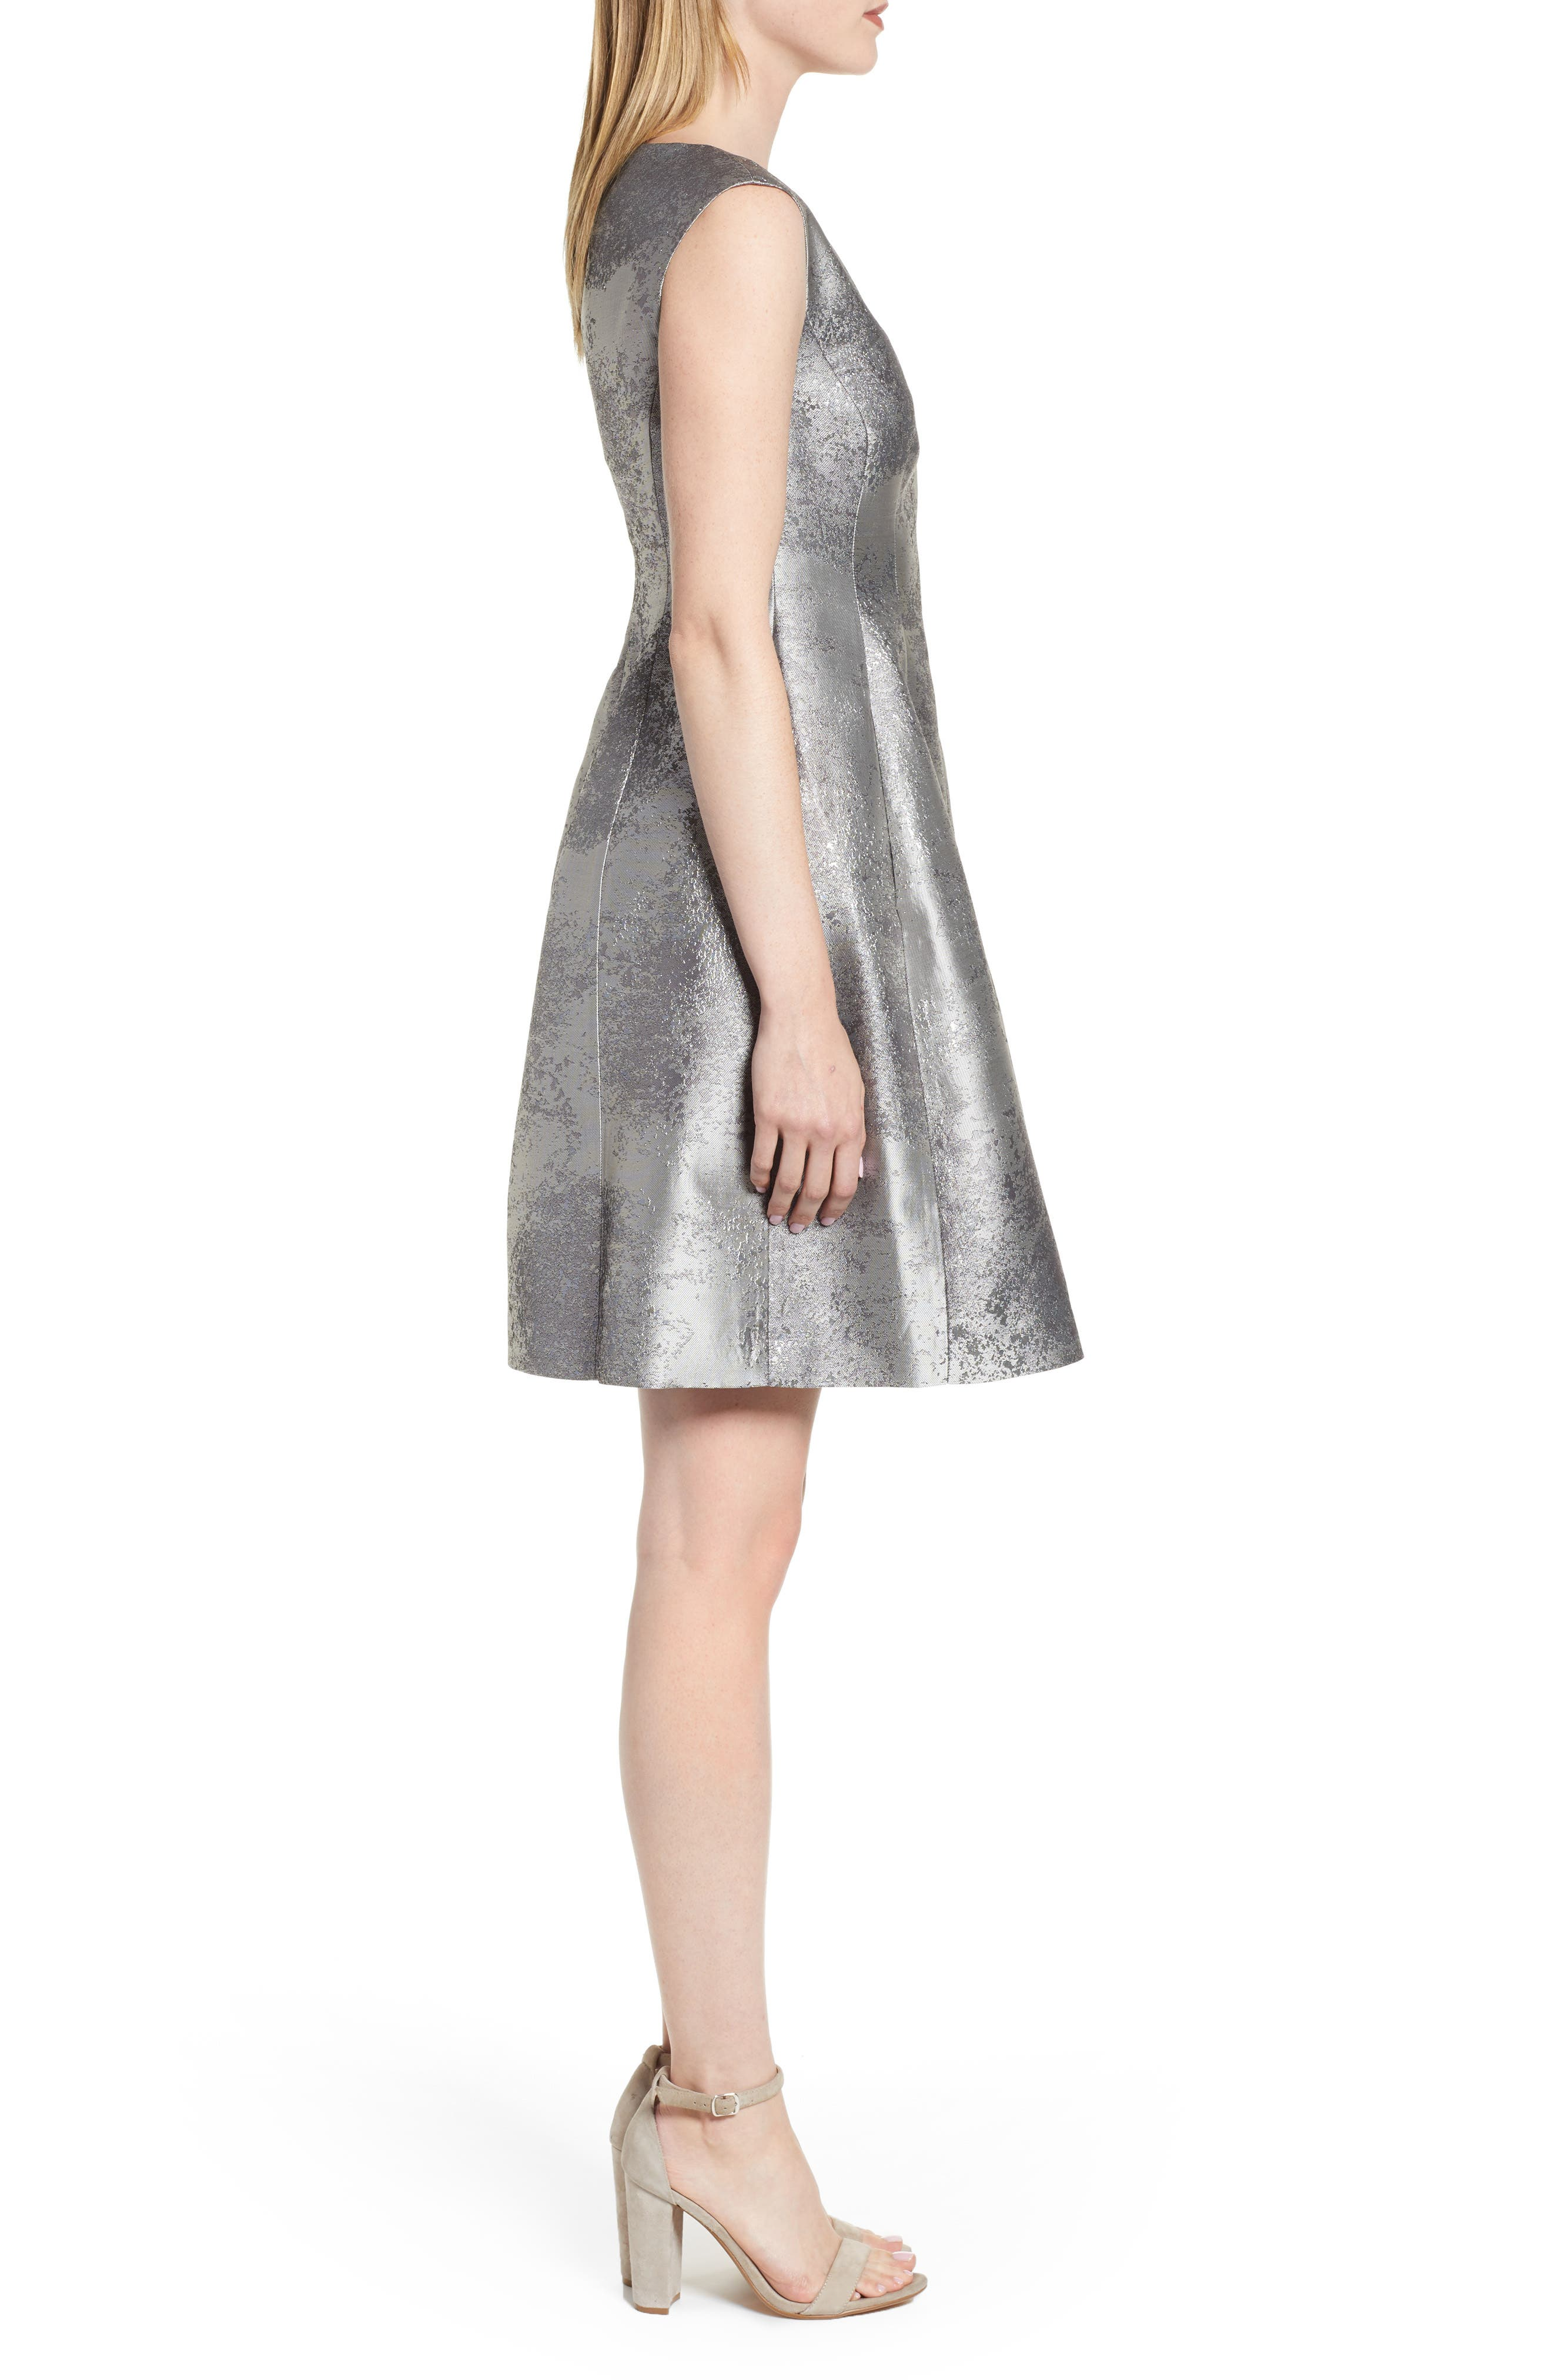 ANNE KLEIN,                             Satin Jacquard Fit & Flare Dress,                             Alternate thumbnail 3, color,                             SILVER COMBO